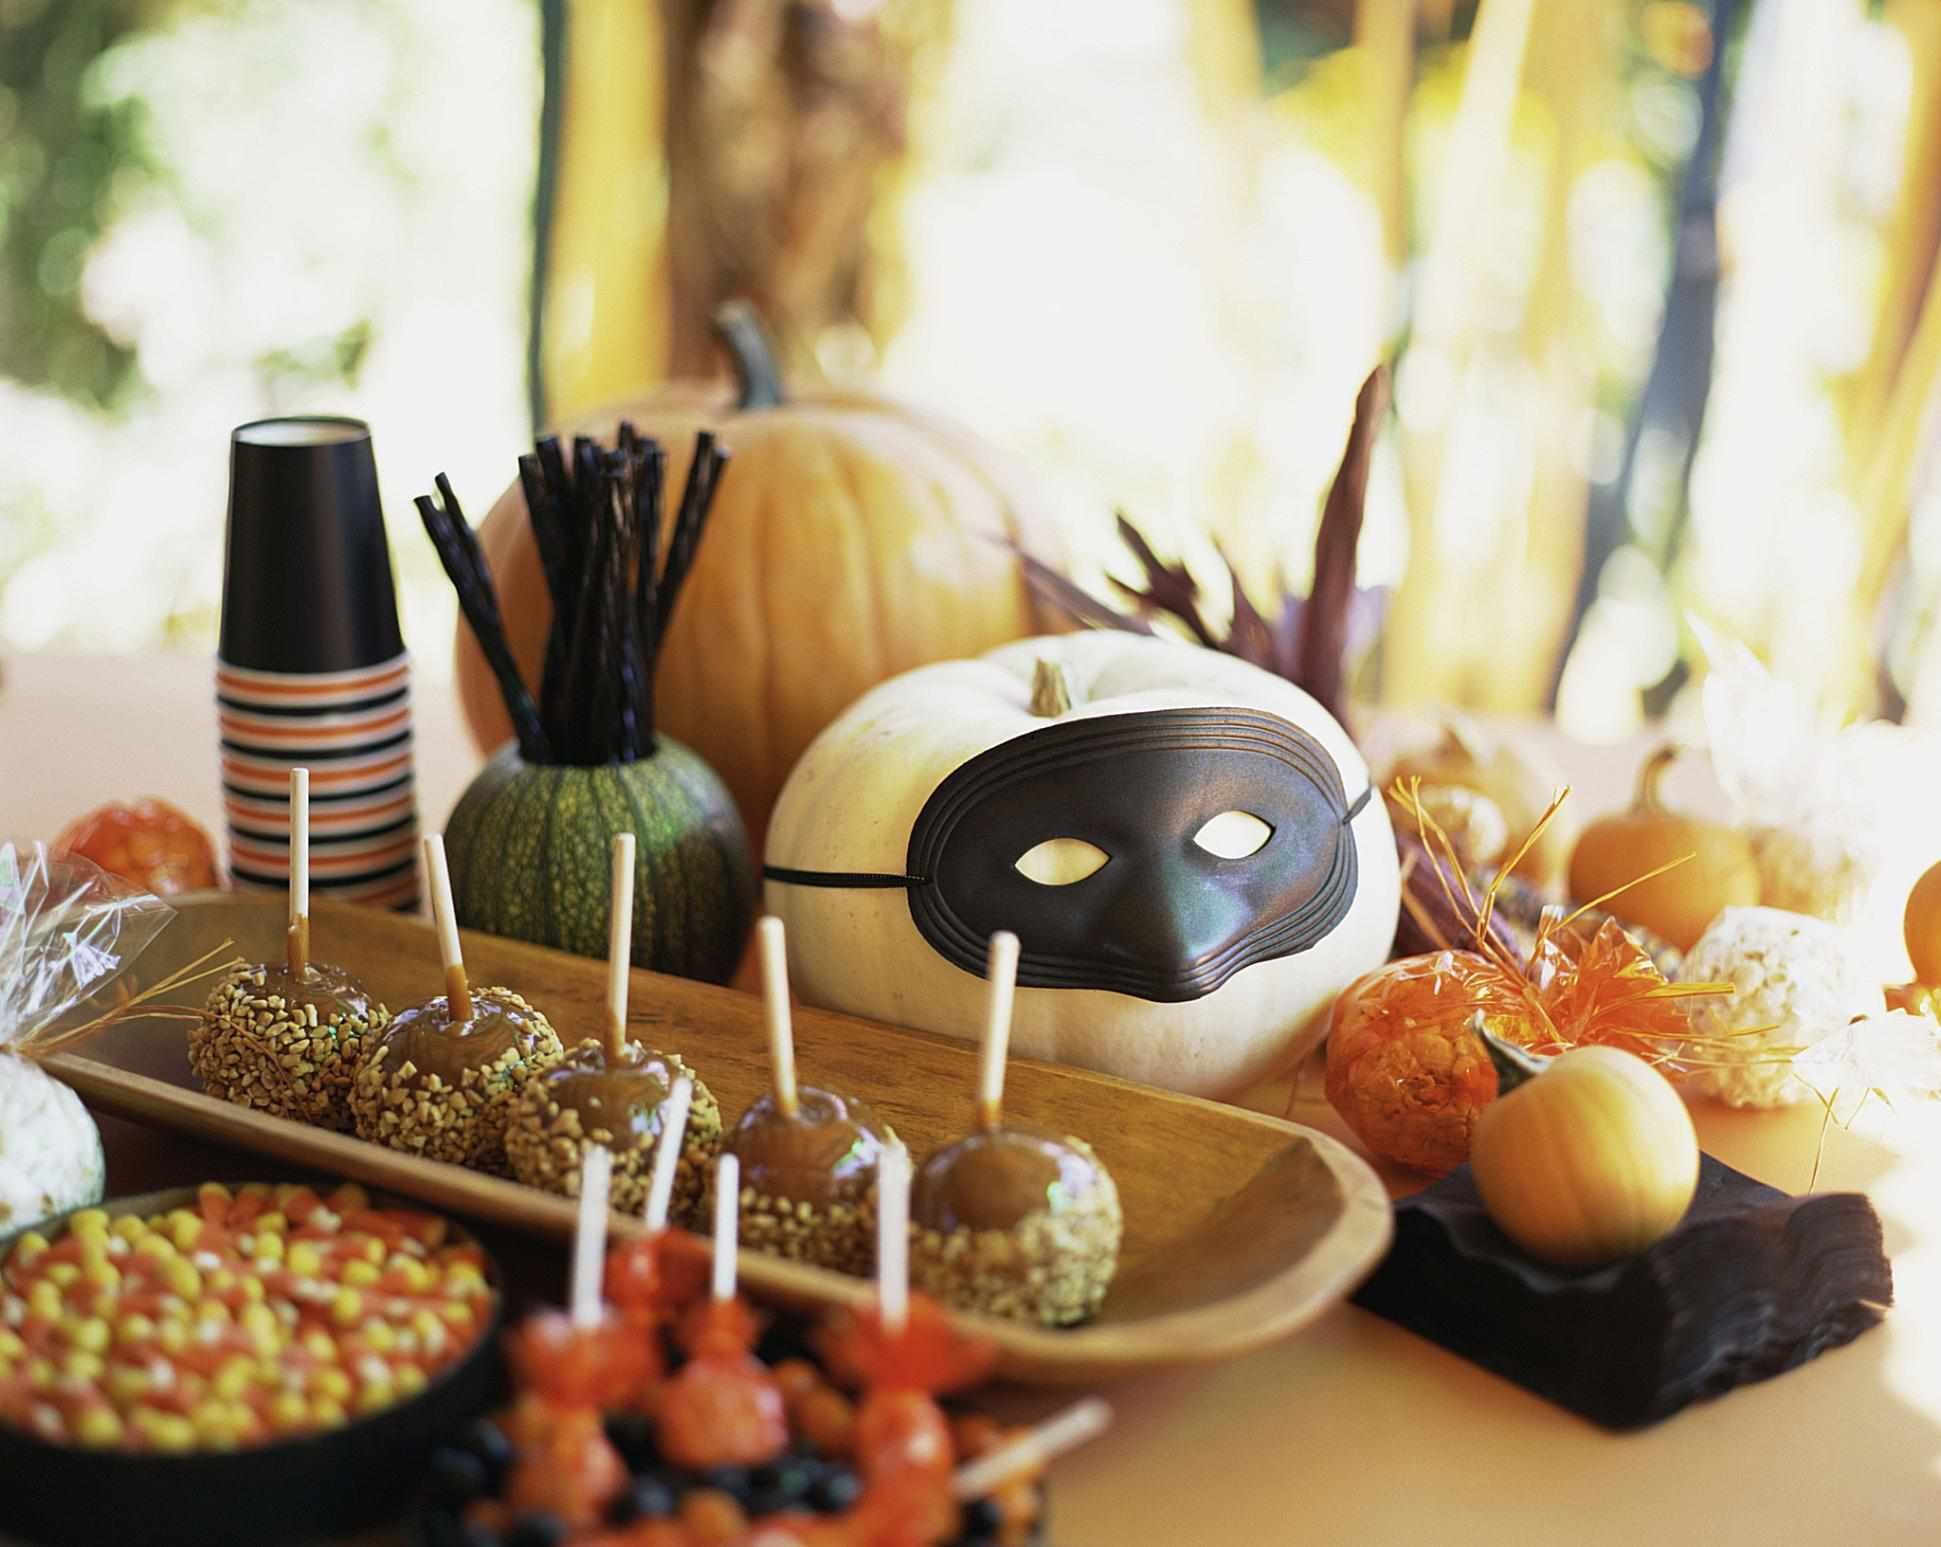 Halloween food and table decorations.